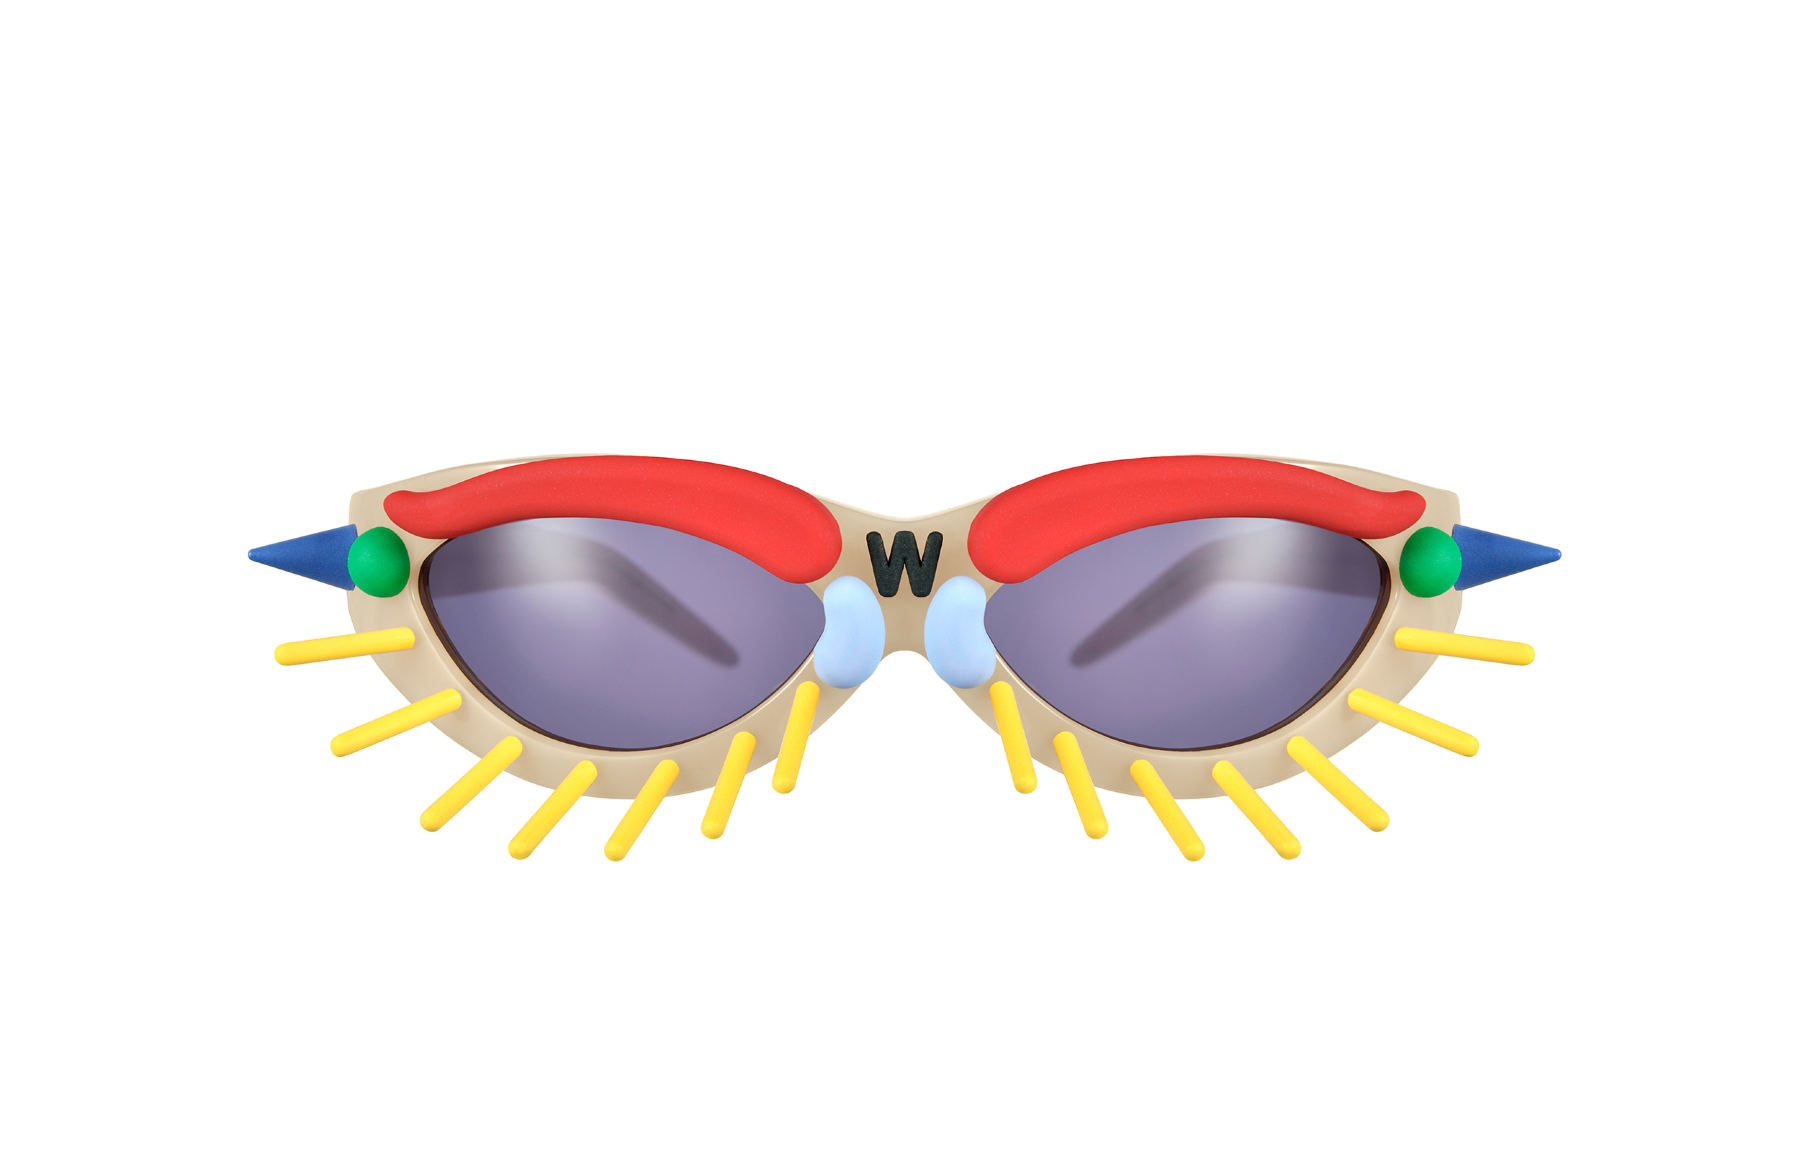 FAKBYFAK x Walter Van Beirendonck  Toy Glasses Model 1. Skin tone with coloured pins Code: 09/01/04